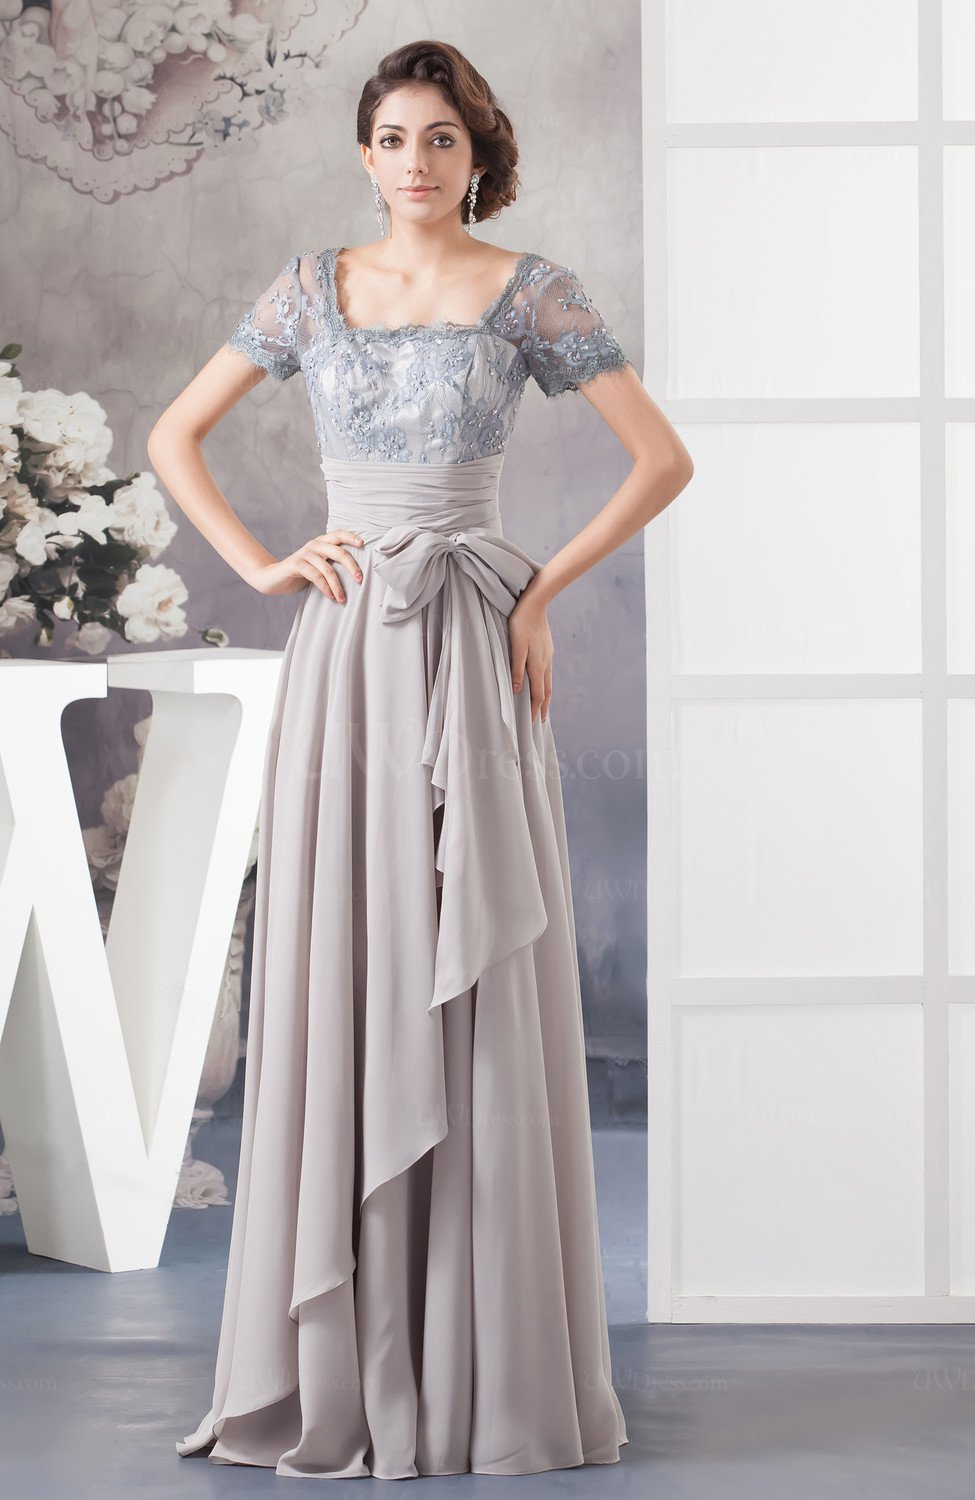 The Simple Evening Dress